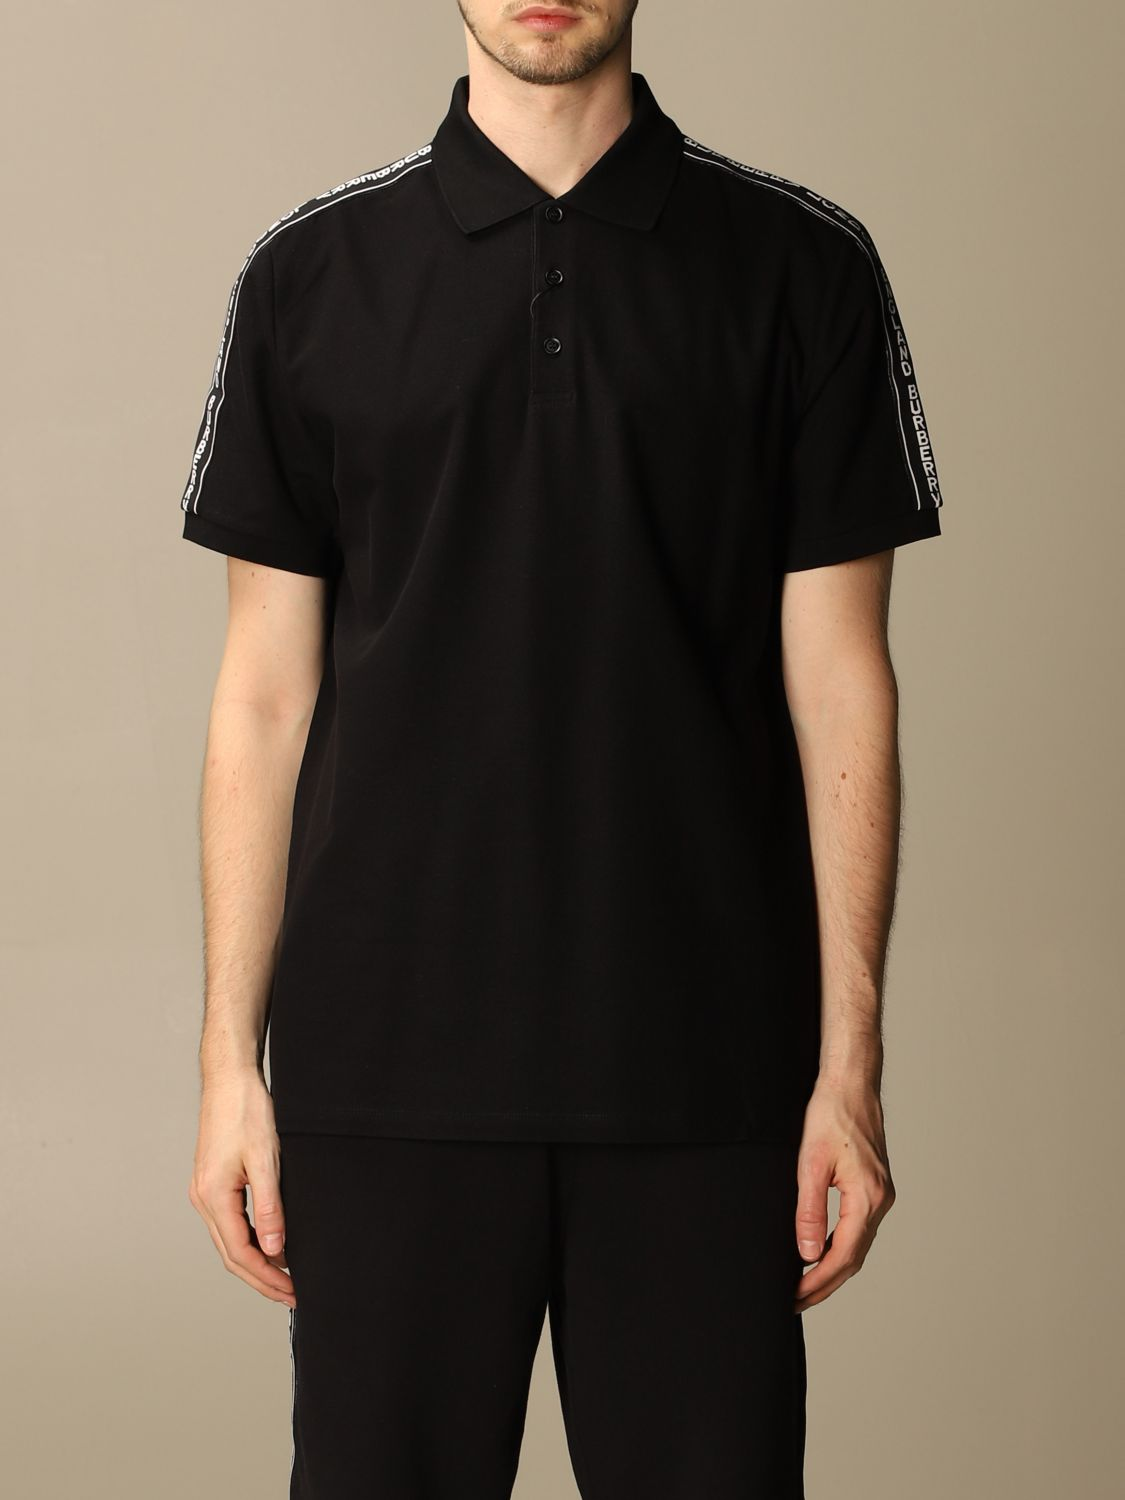 Polo shirt Burberry: Stonely Burberry polo shirt in piqué cotton with logoed bands black 1